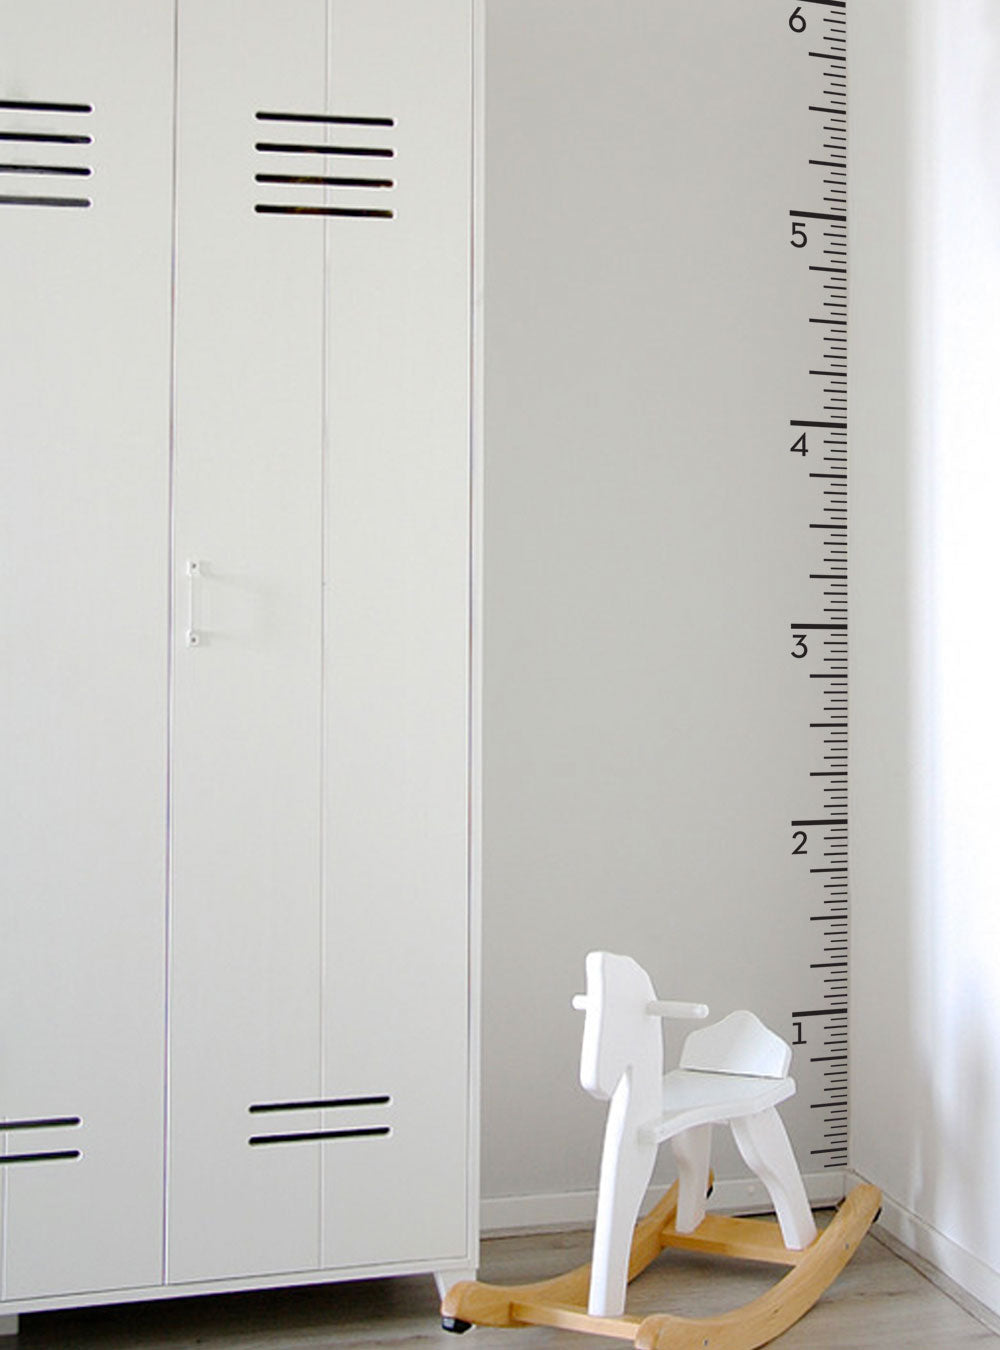 Growth Chart Ruler Decal - Children's Vinyl Wall Decal